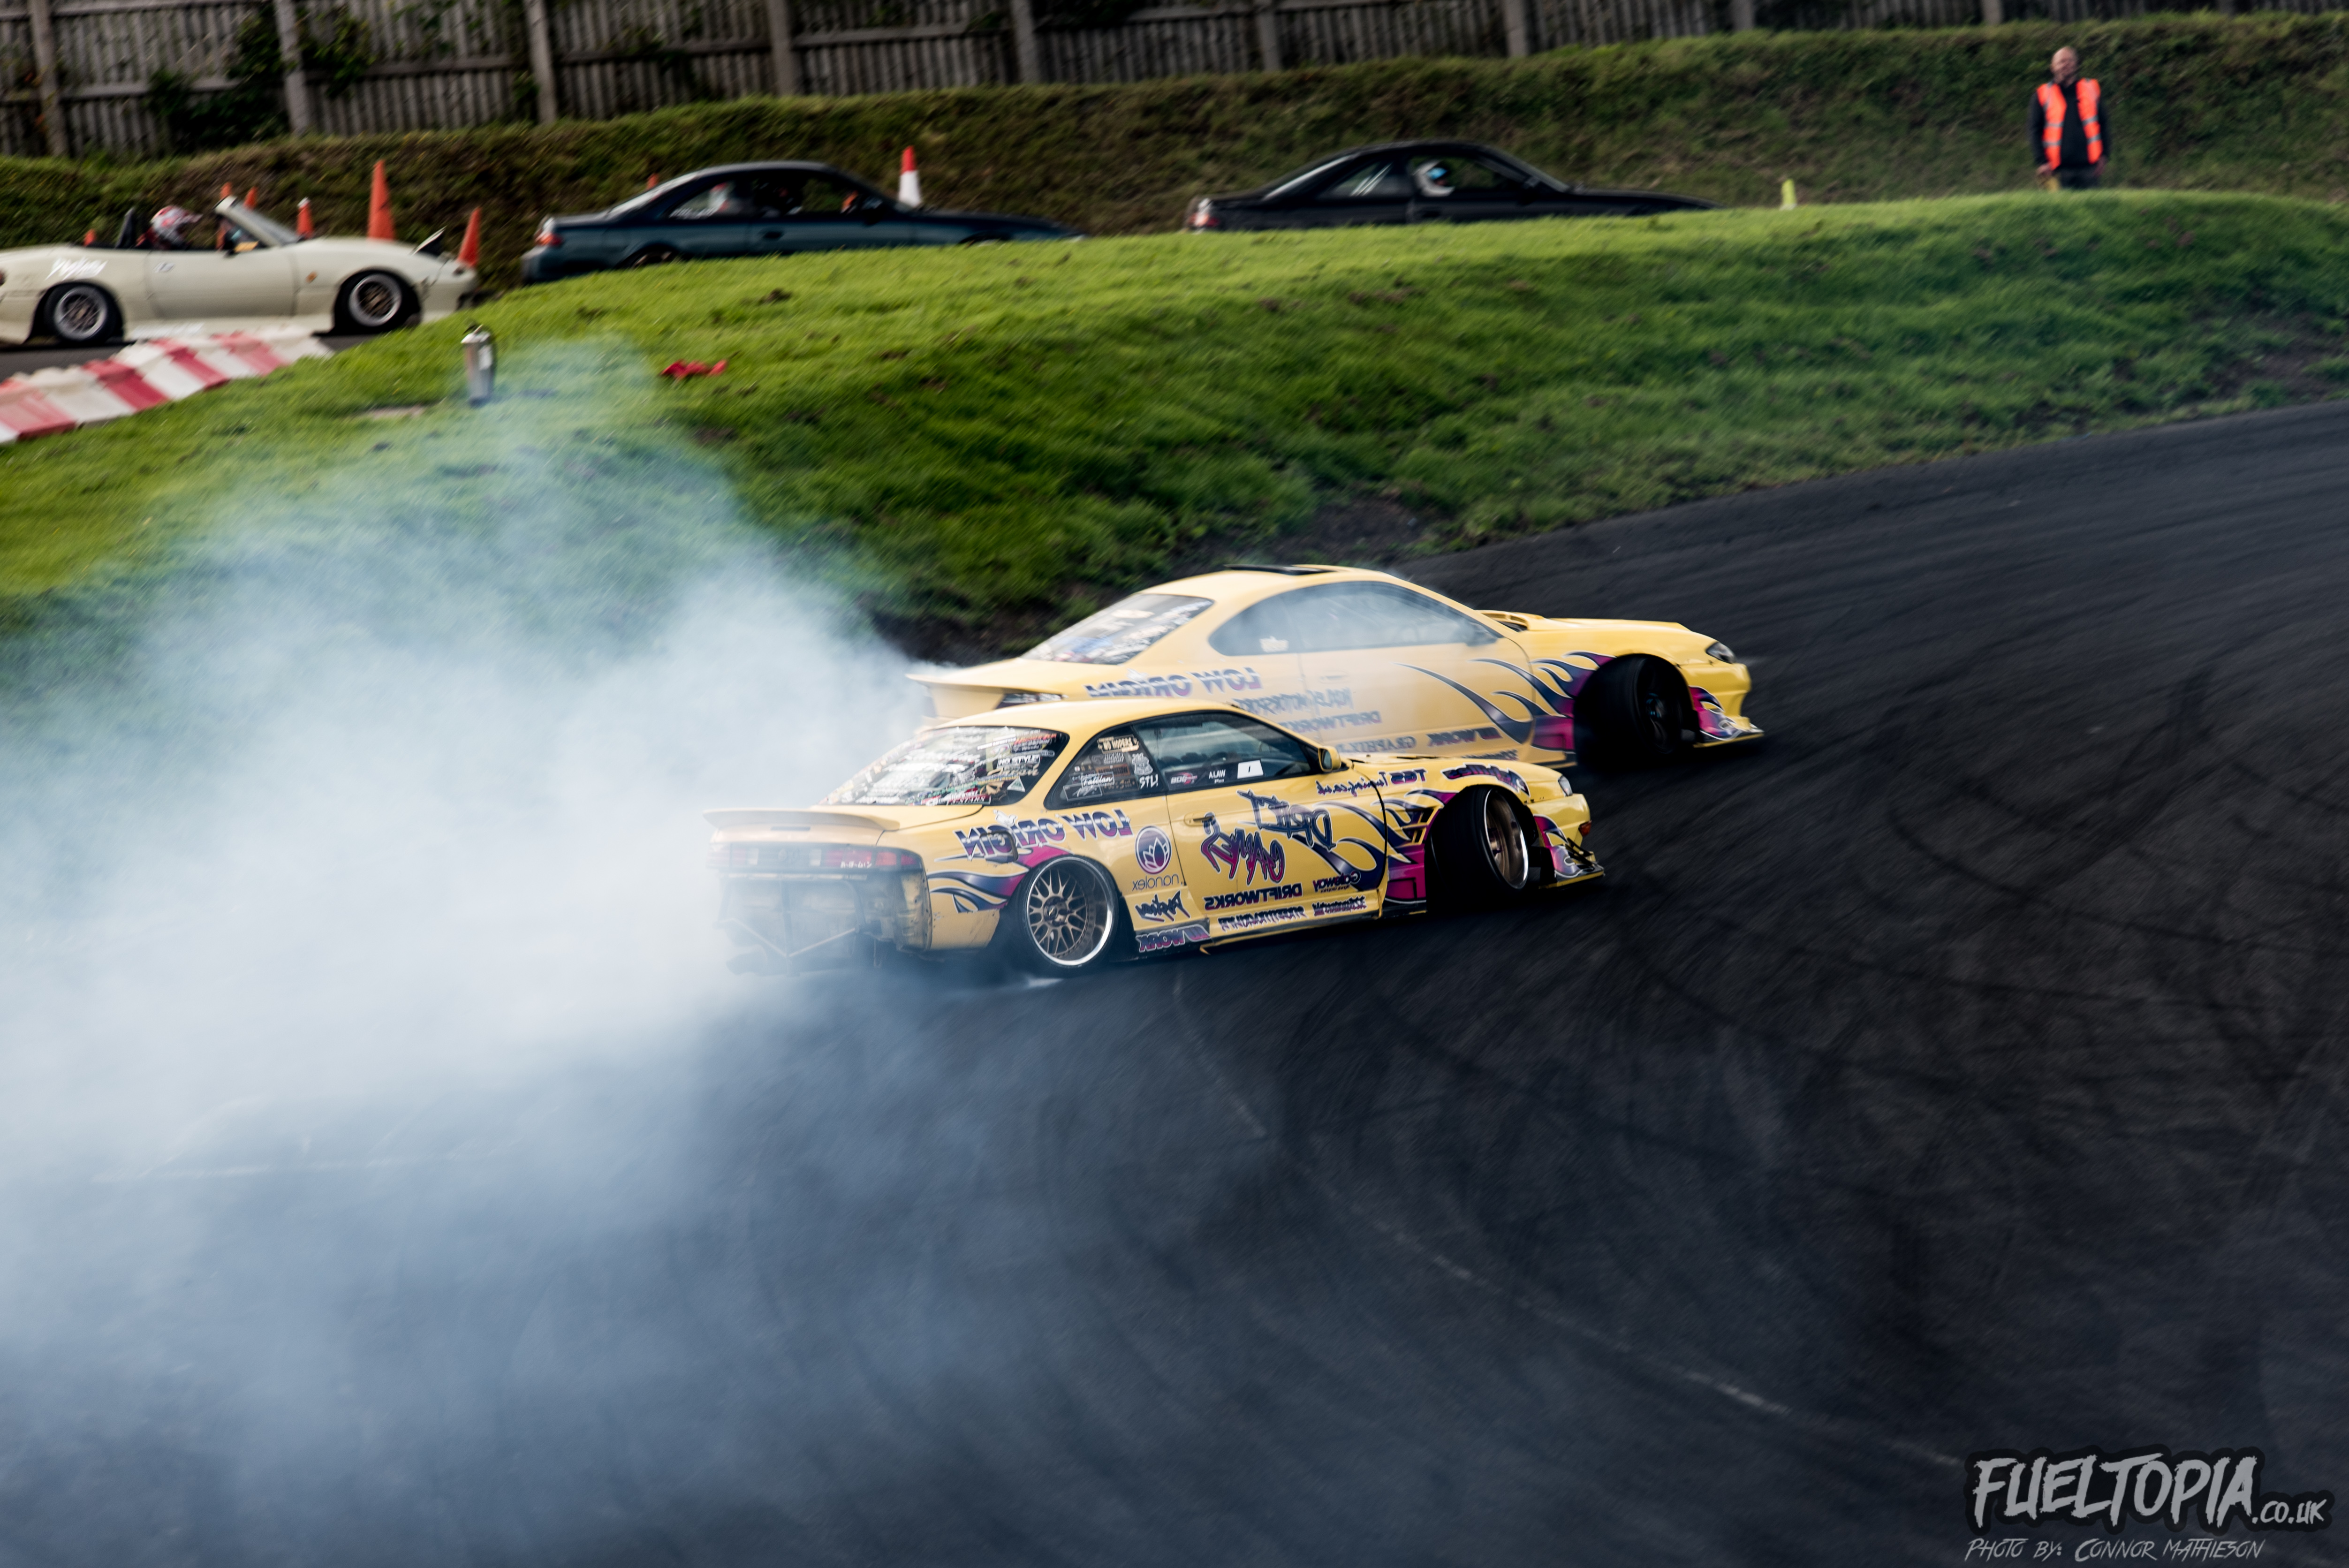 S13 Archives Fueltopia